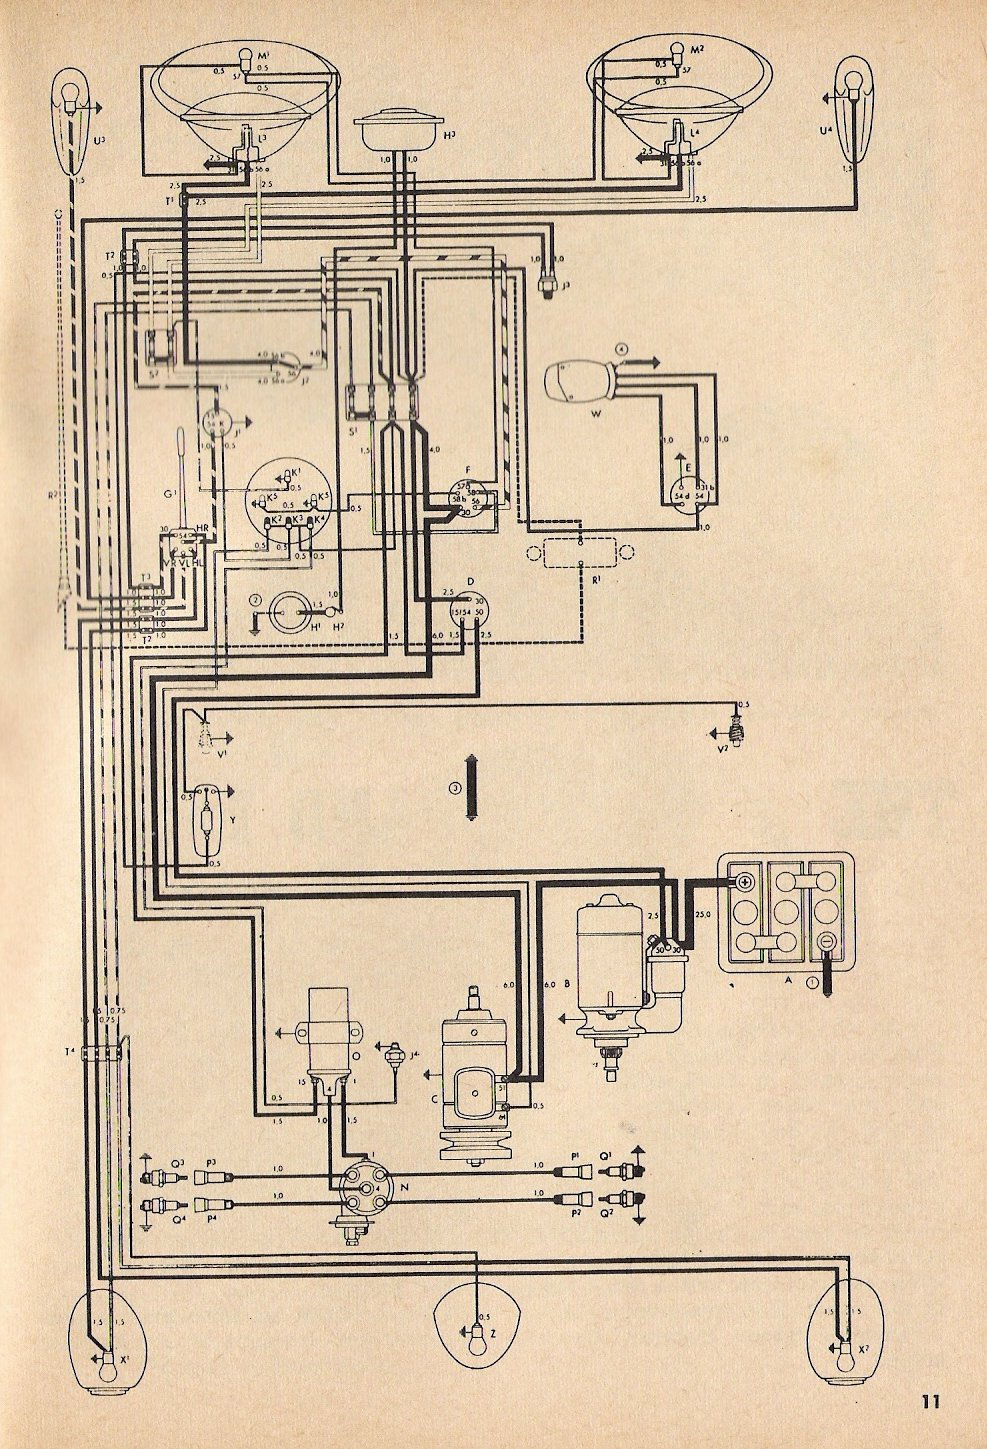 Wiring Diagram For 1975 Vw Beetle : Vw beetle wiring diagram get free image about